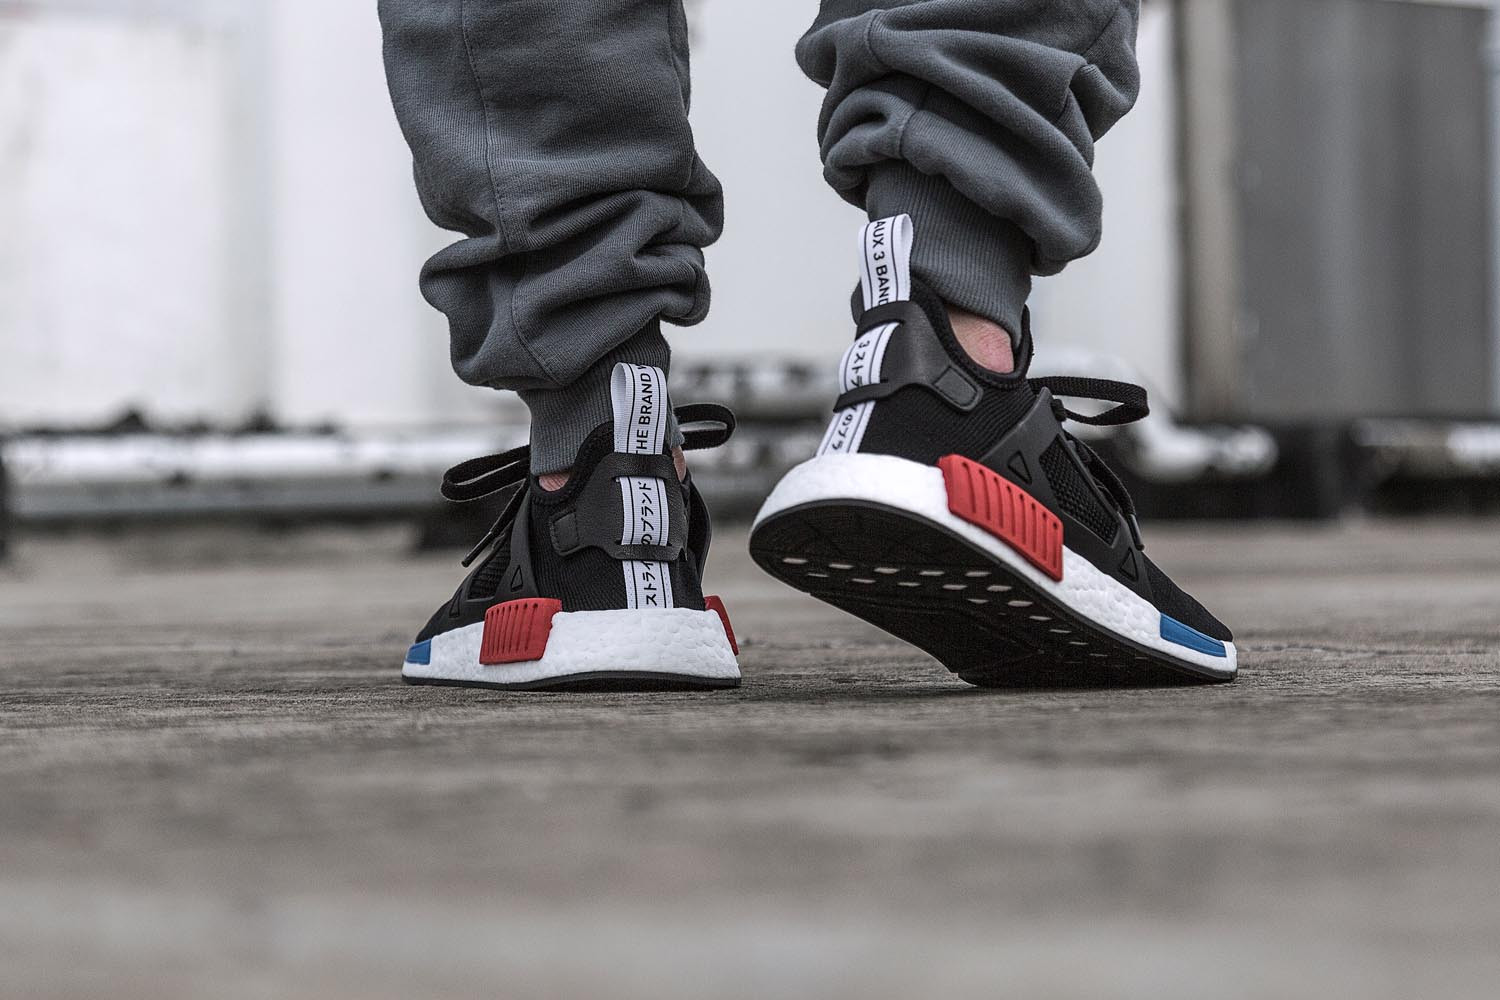 NMD R1 'Gum Pack', NMD XR1 OG, NMD R1 'Glitch Camo' and NMD CS2 'Black/Pink' and 'Grey/Purple'